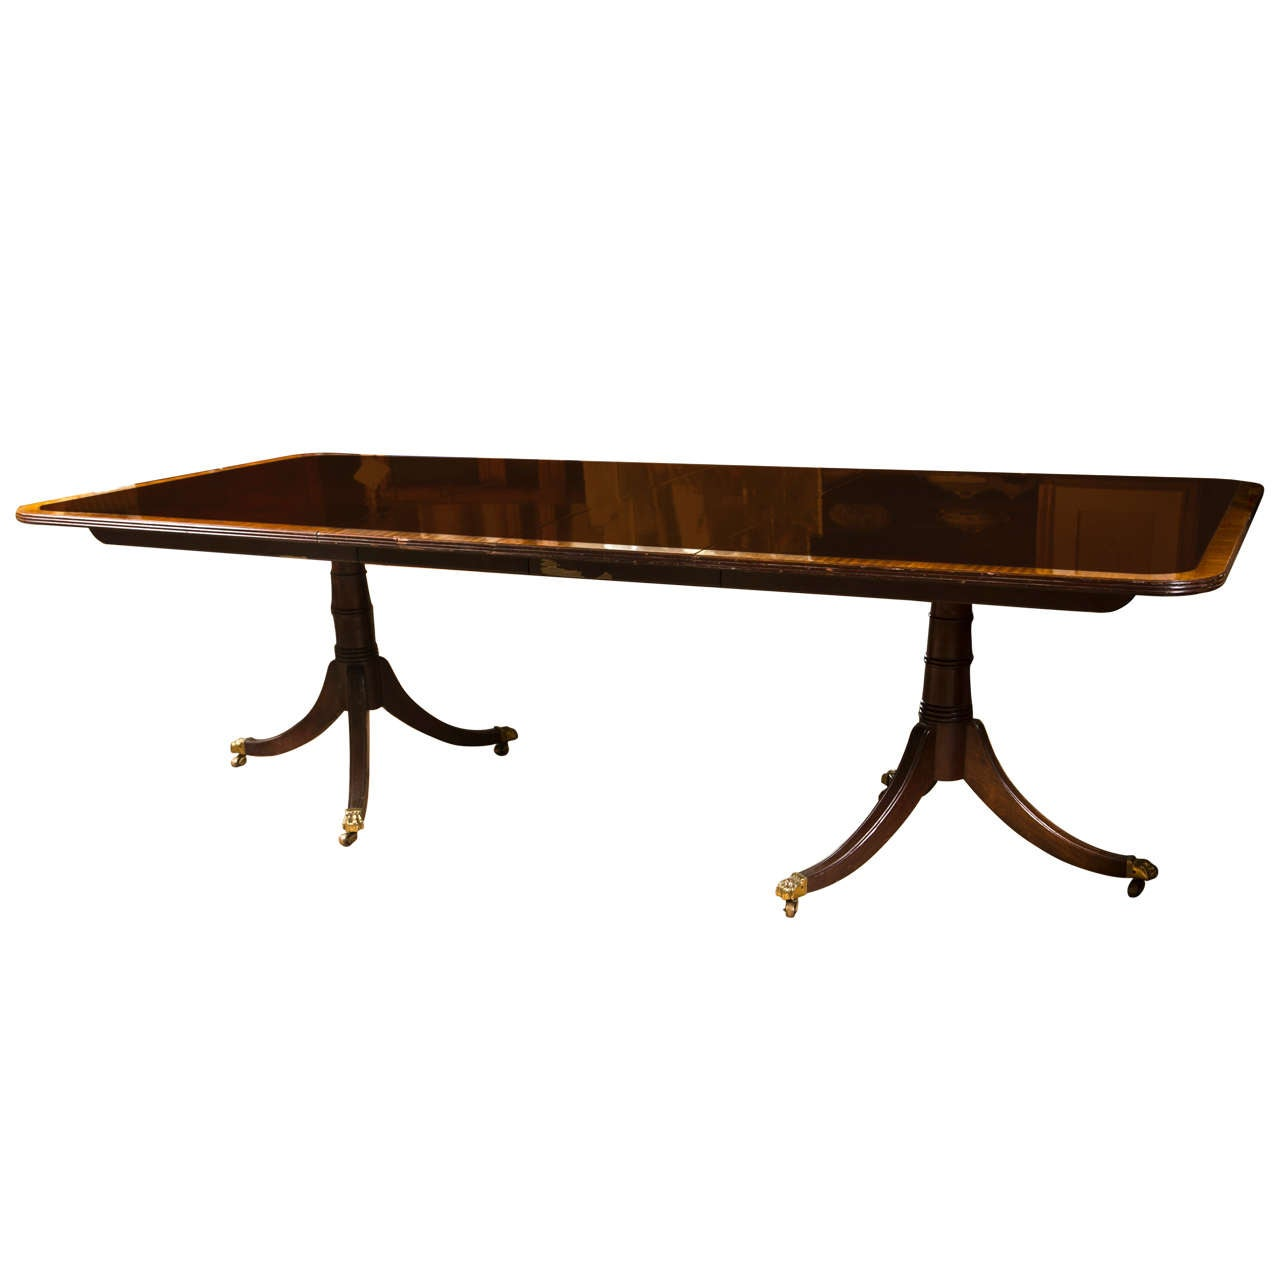 Regency Style Banded Mahogany Dining Table By Stickley